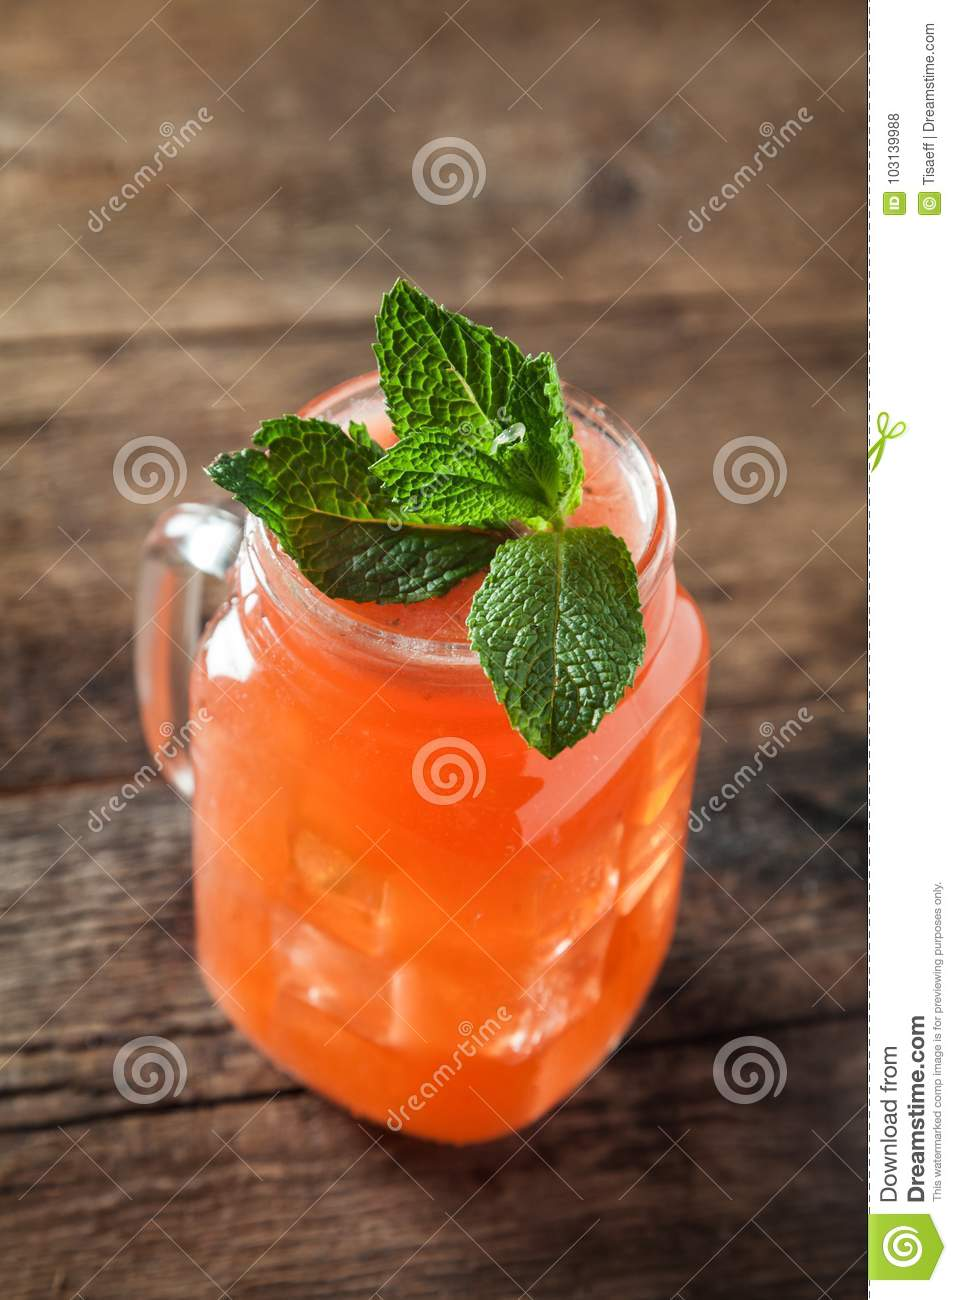 Refreshing alcoholic cocktails garnished with fresh mint